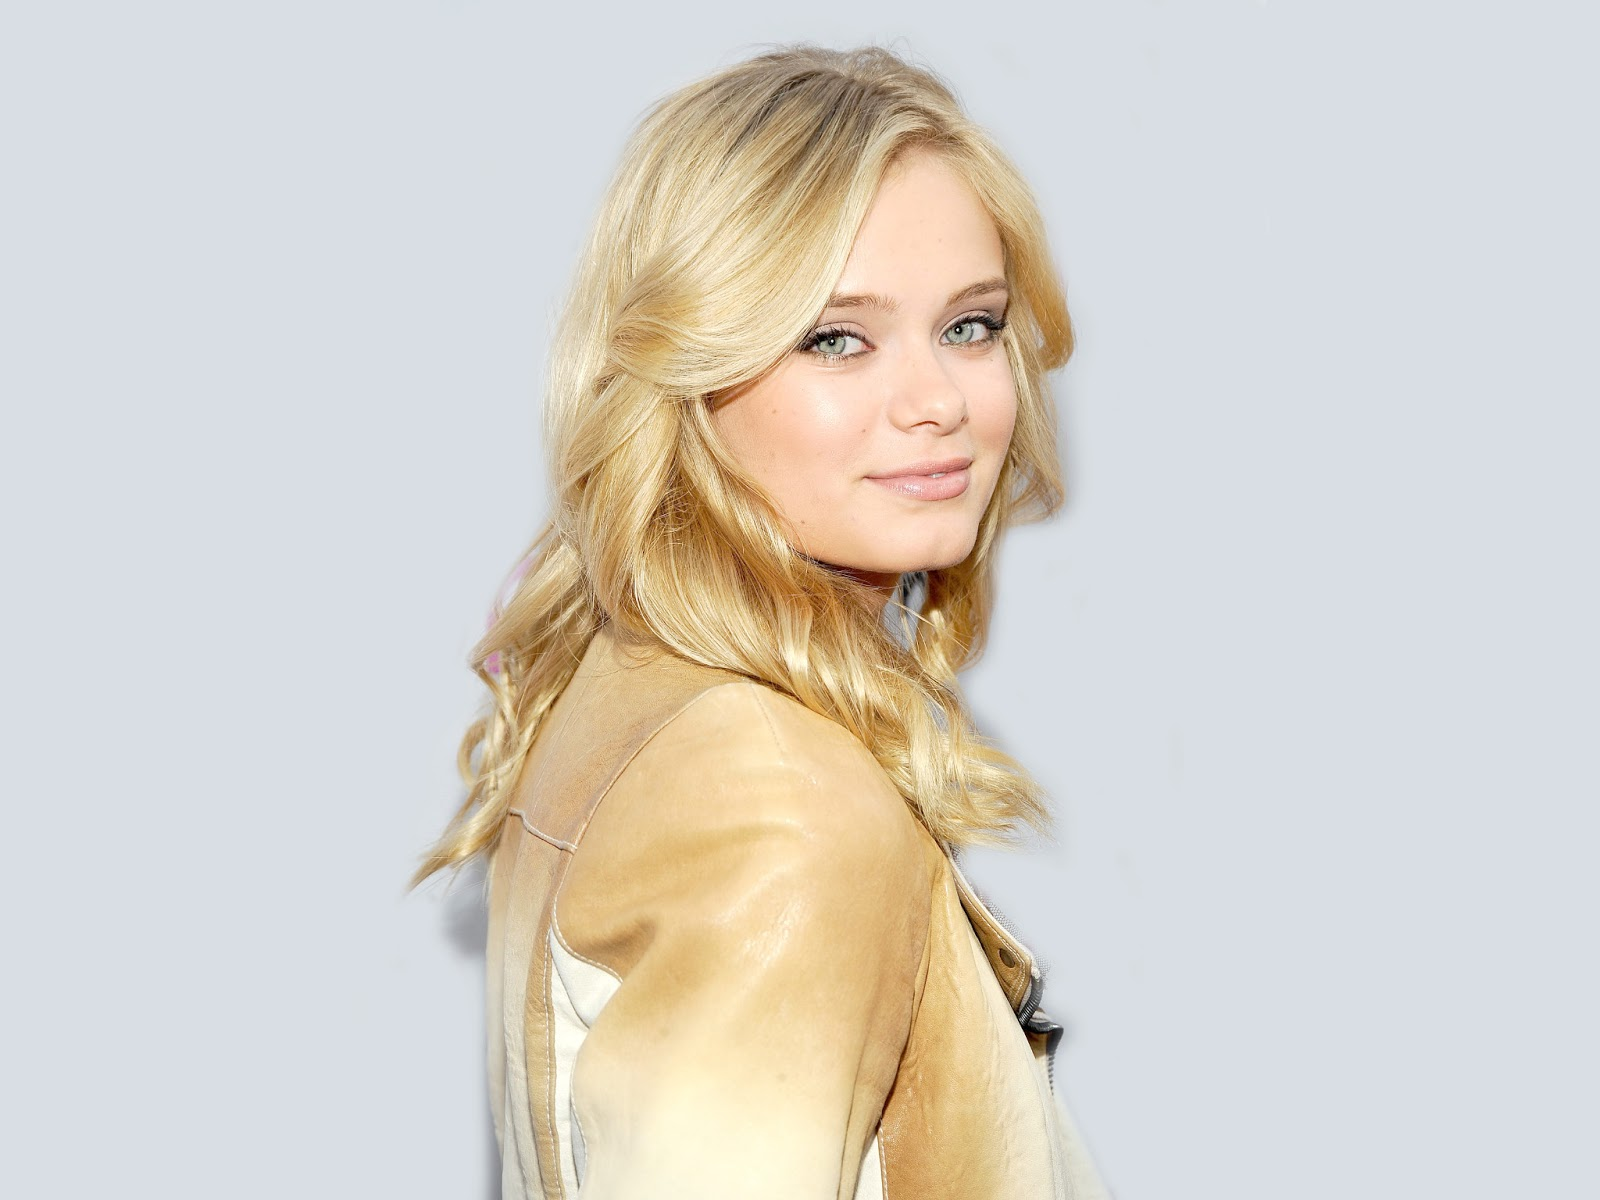 Cute Fruit Wallpaper For Android Sara Paxton Wallpapers Hd Wallpapers Wallpaper Free 3979